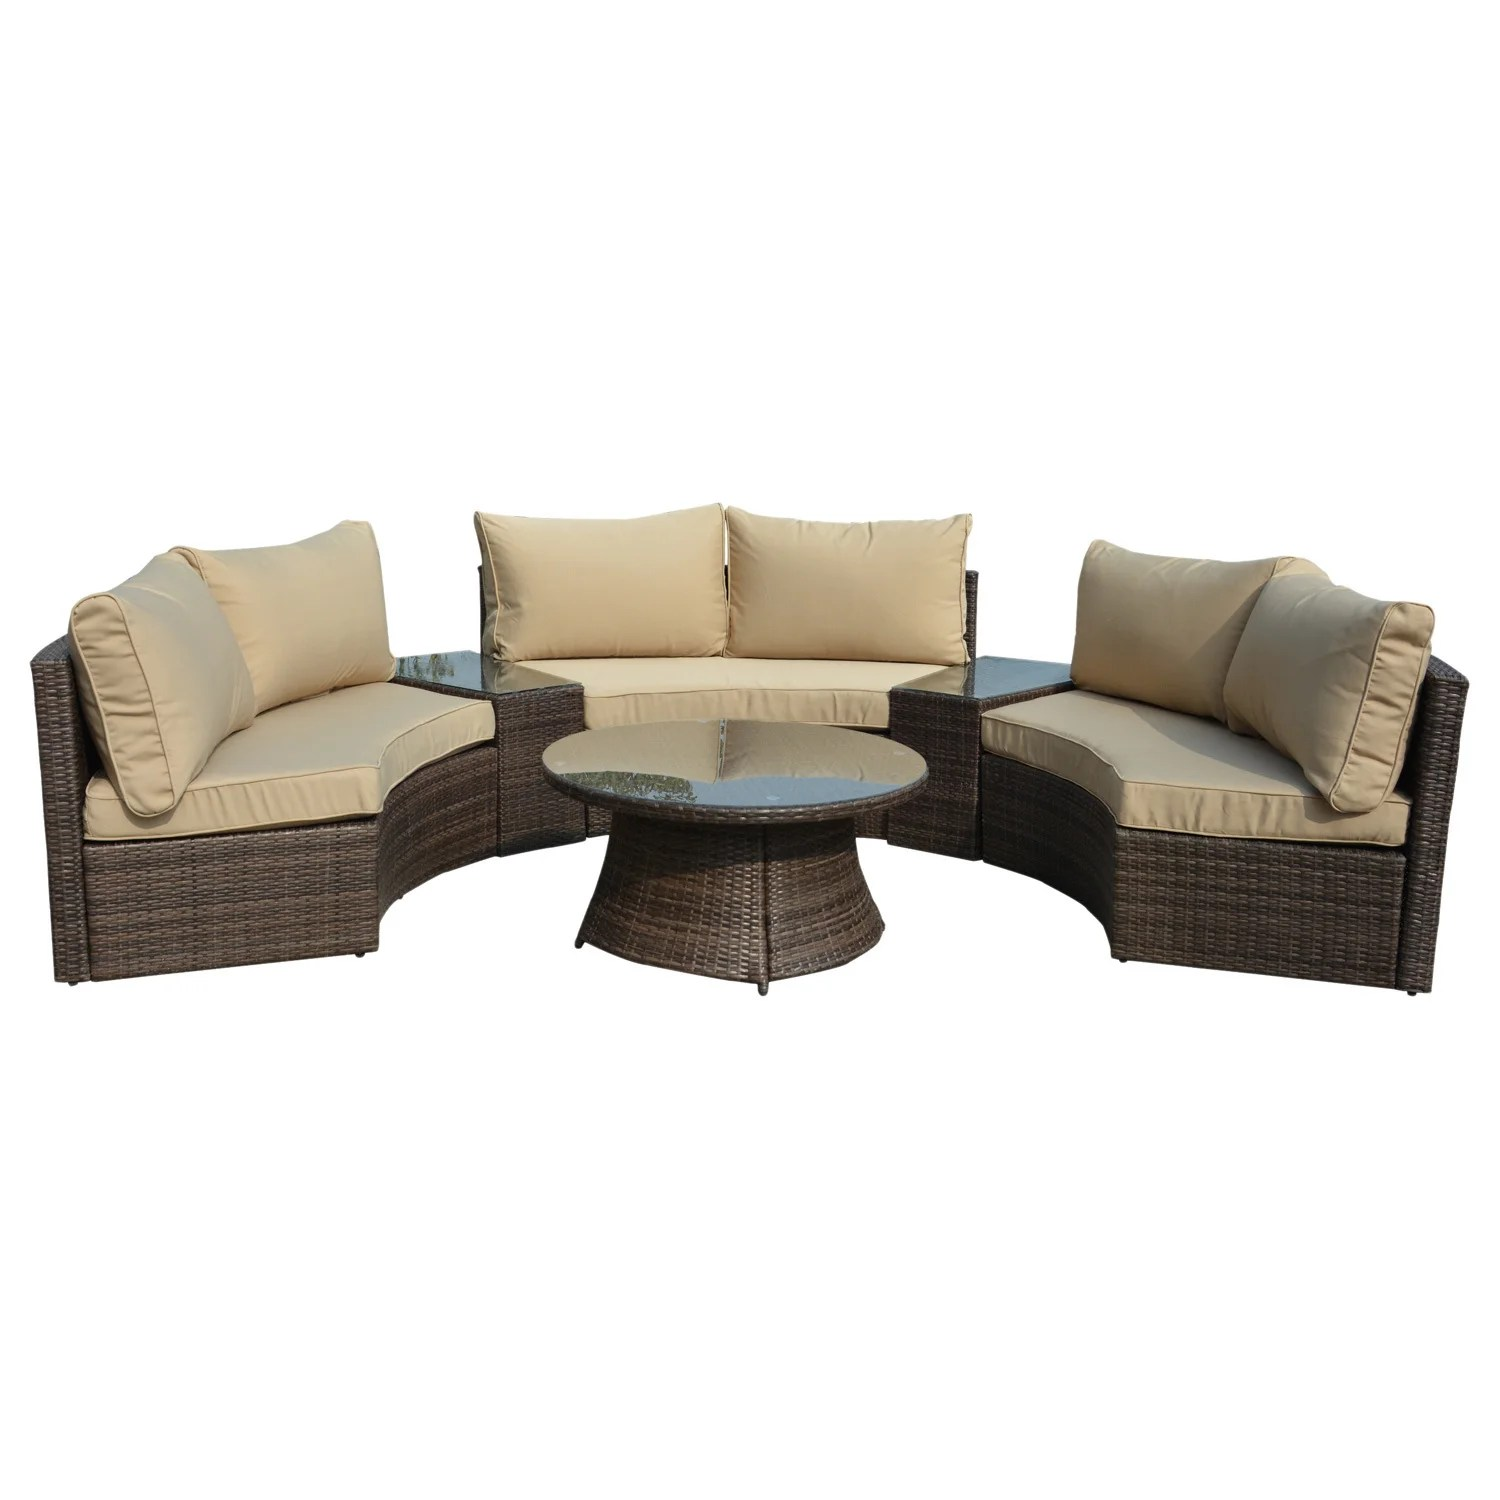 Pearl Daybed Outdoor Manhattan Comfort Pearl Semi Circle Outdoor Sofa Patio Set